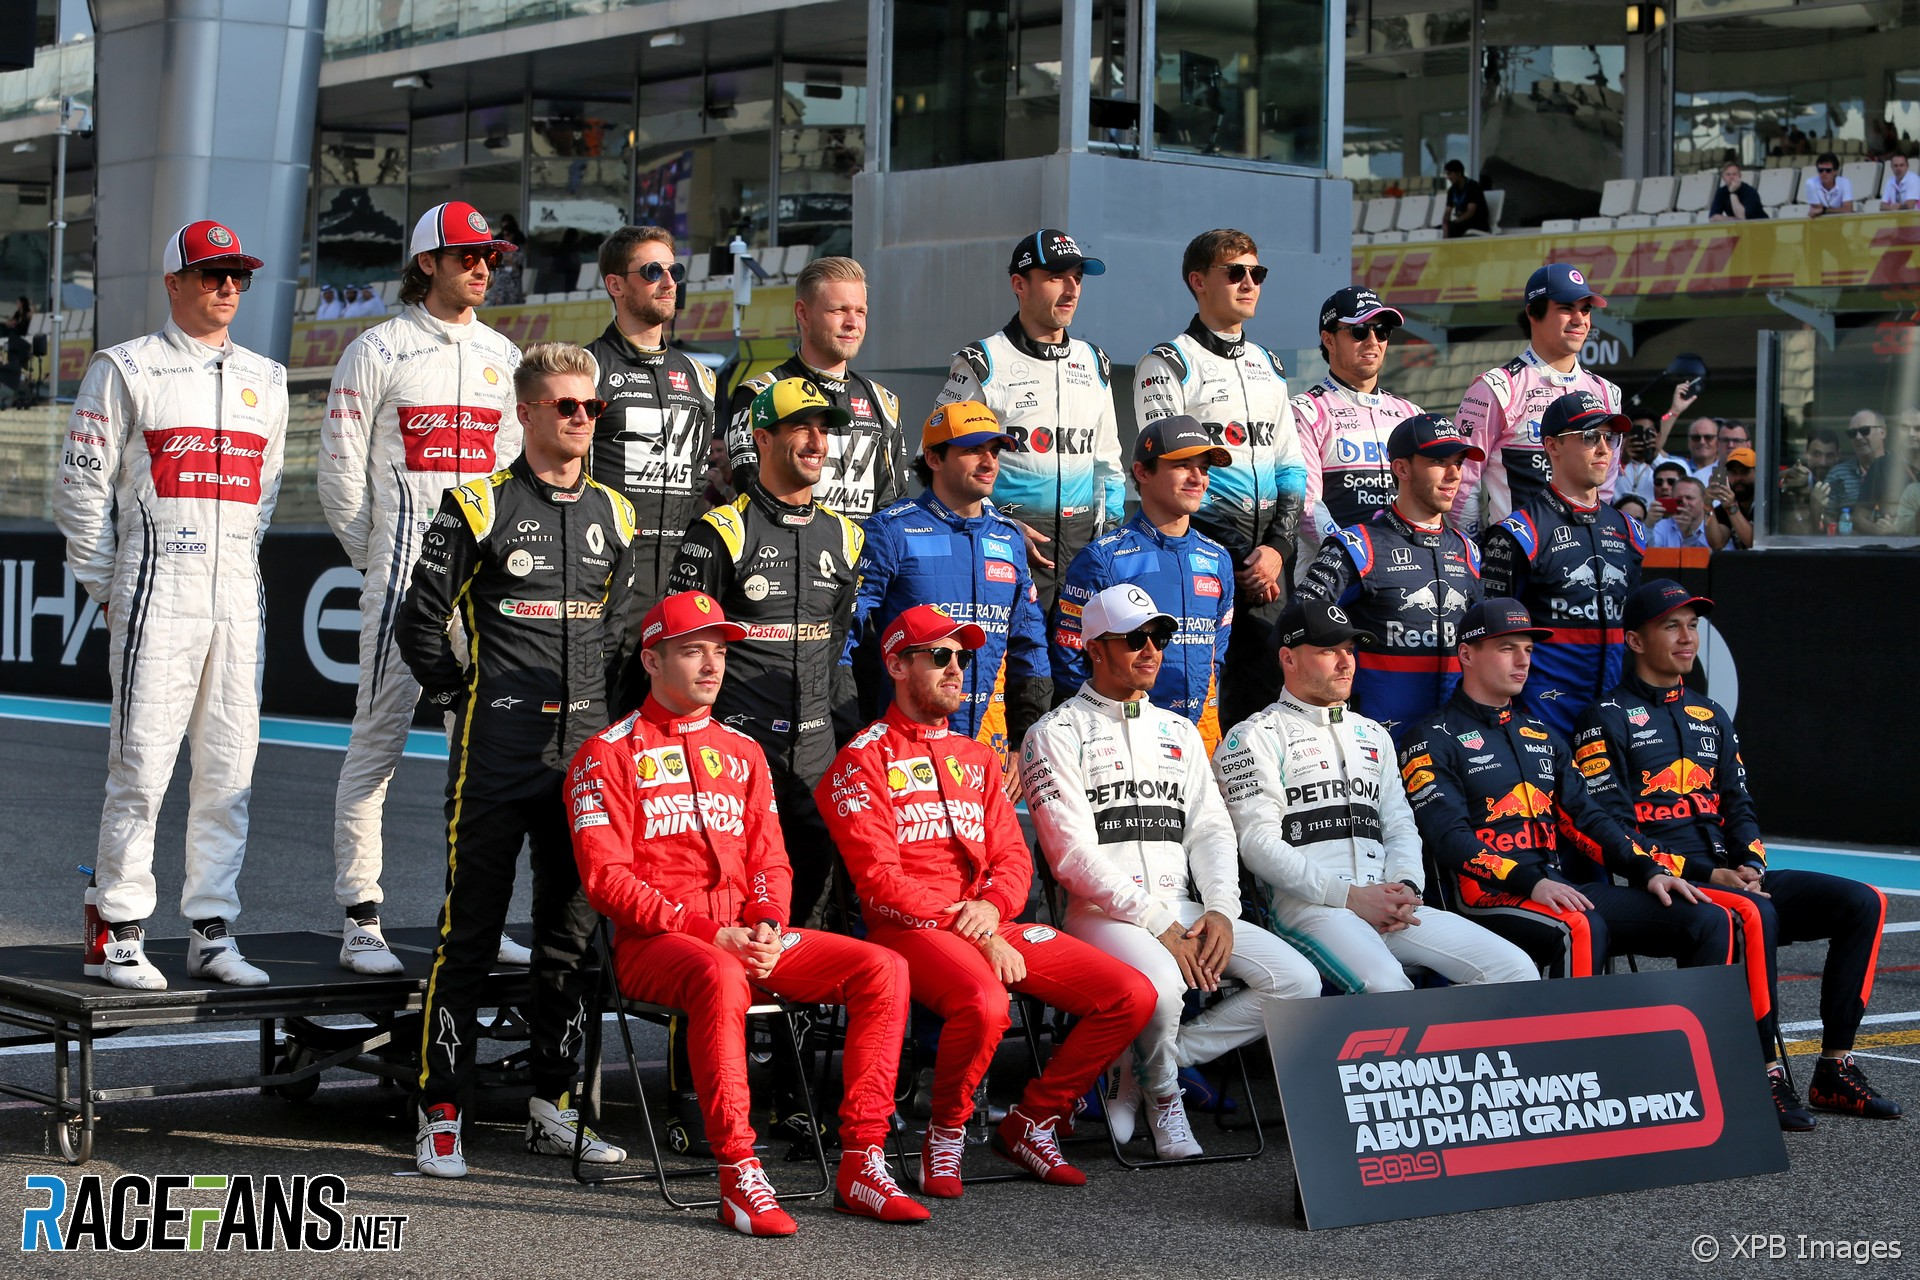 2020 F1 Drivers And Teams Racefans